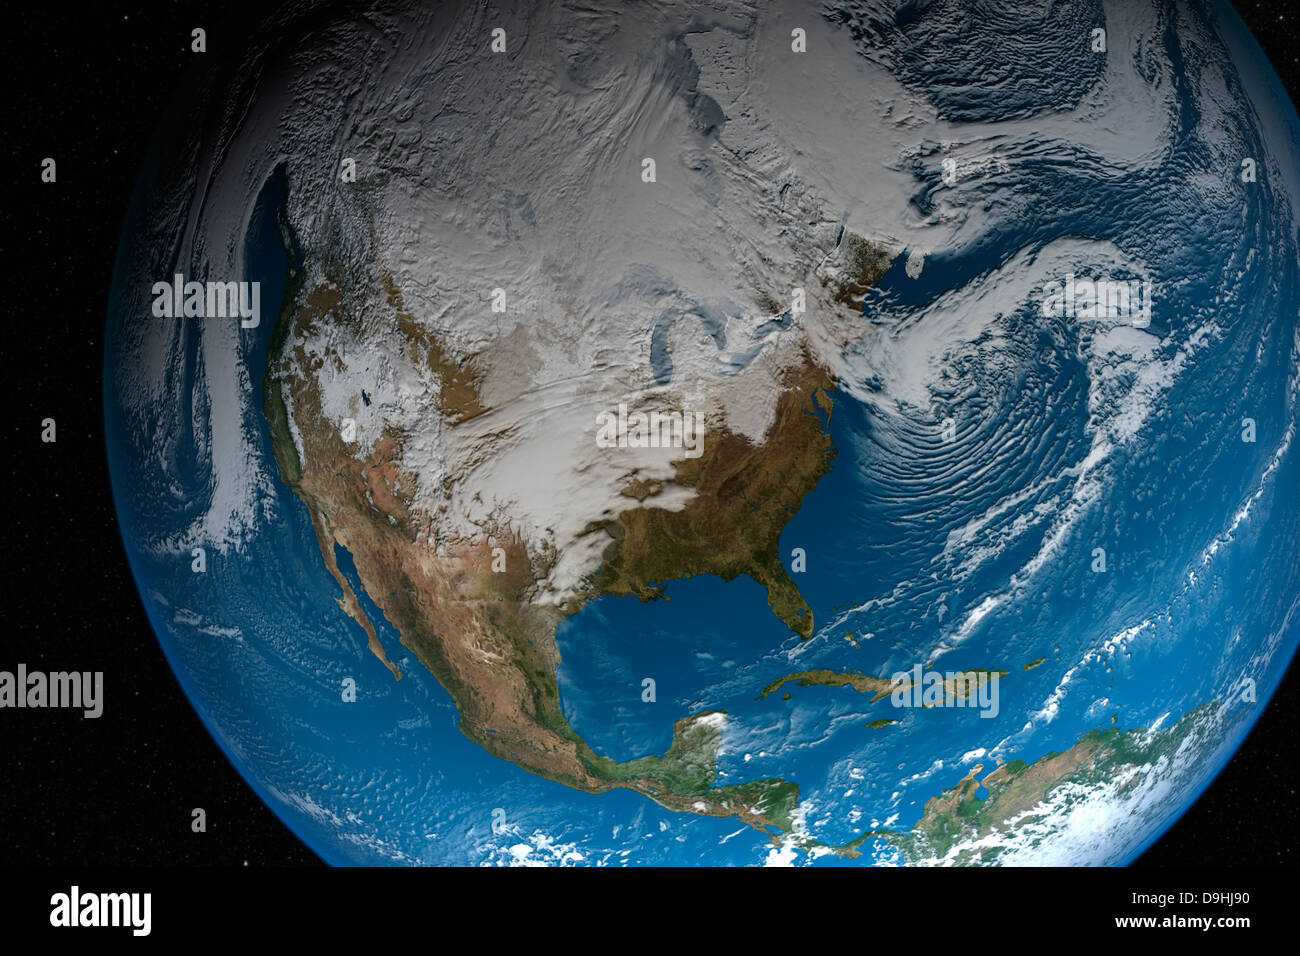 Ful Earth showing simulated clouds over North America. - Stock Image